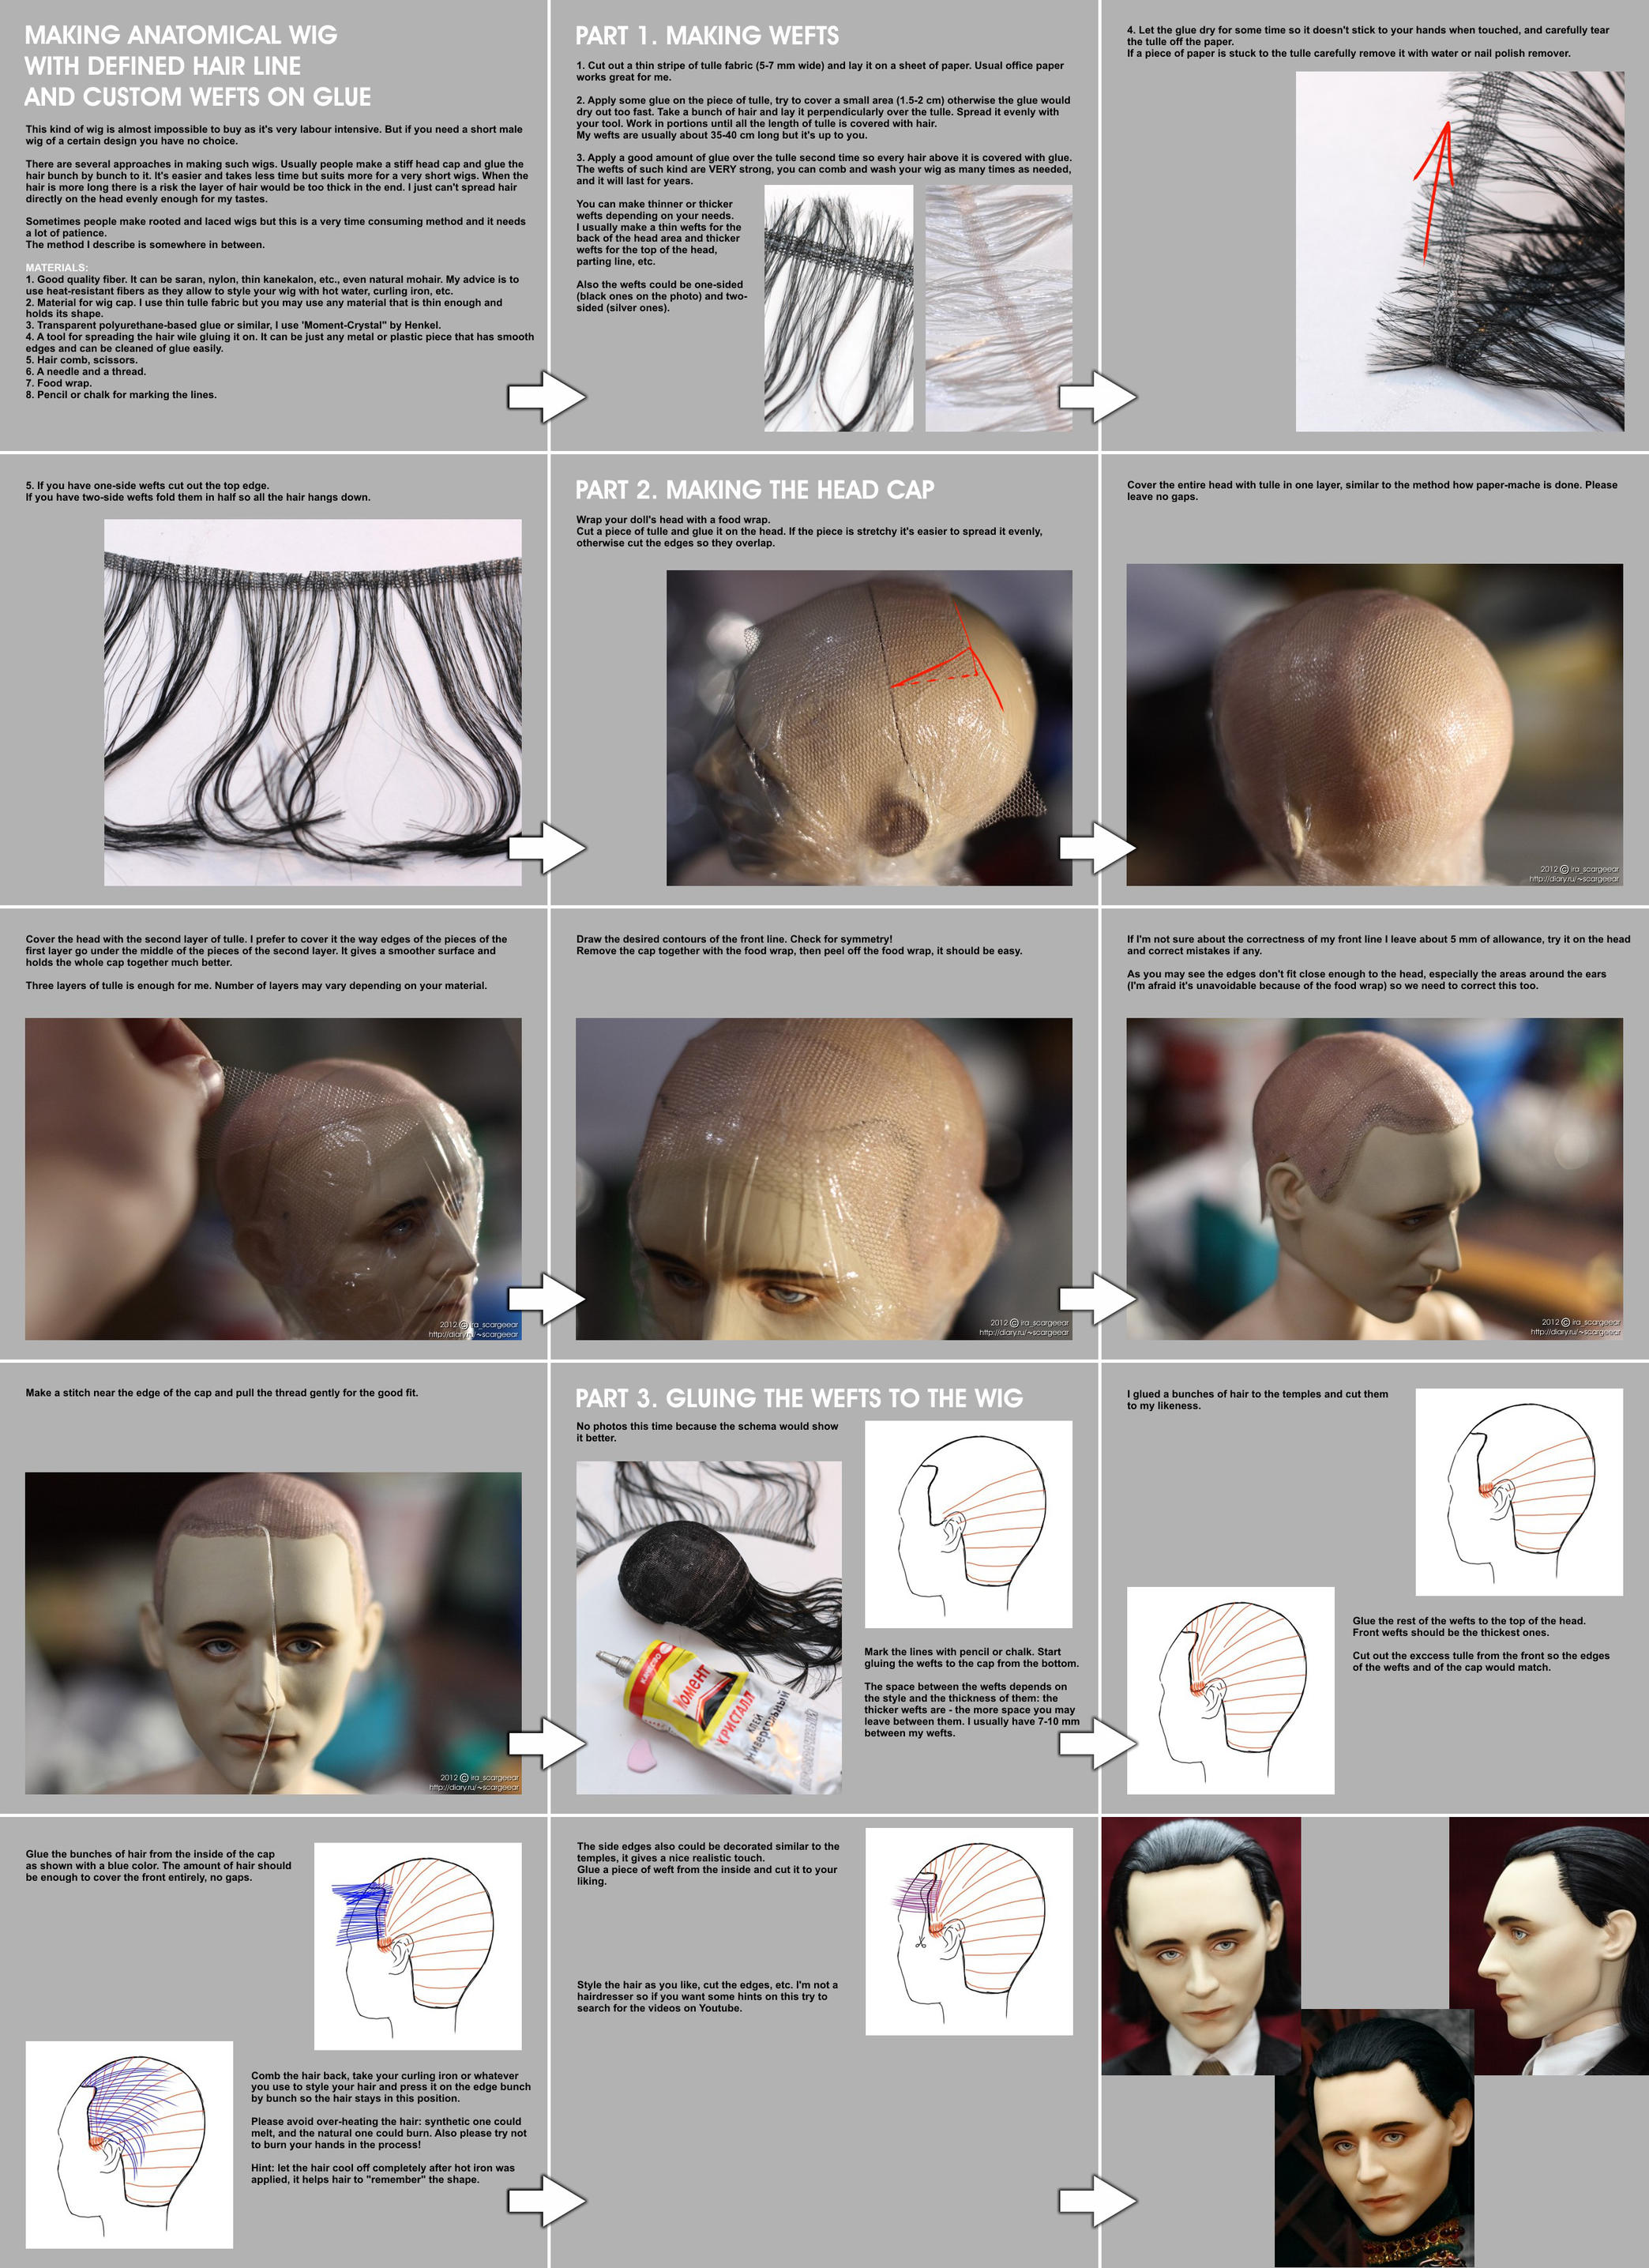 Tutorial: anatomical wig with defined hair line by scargeear